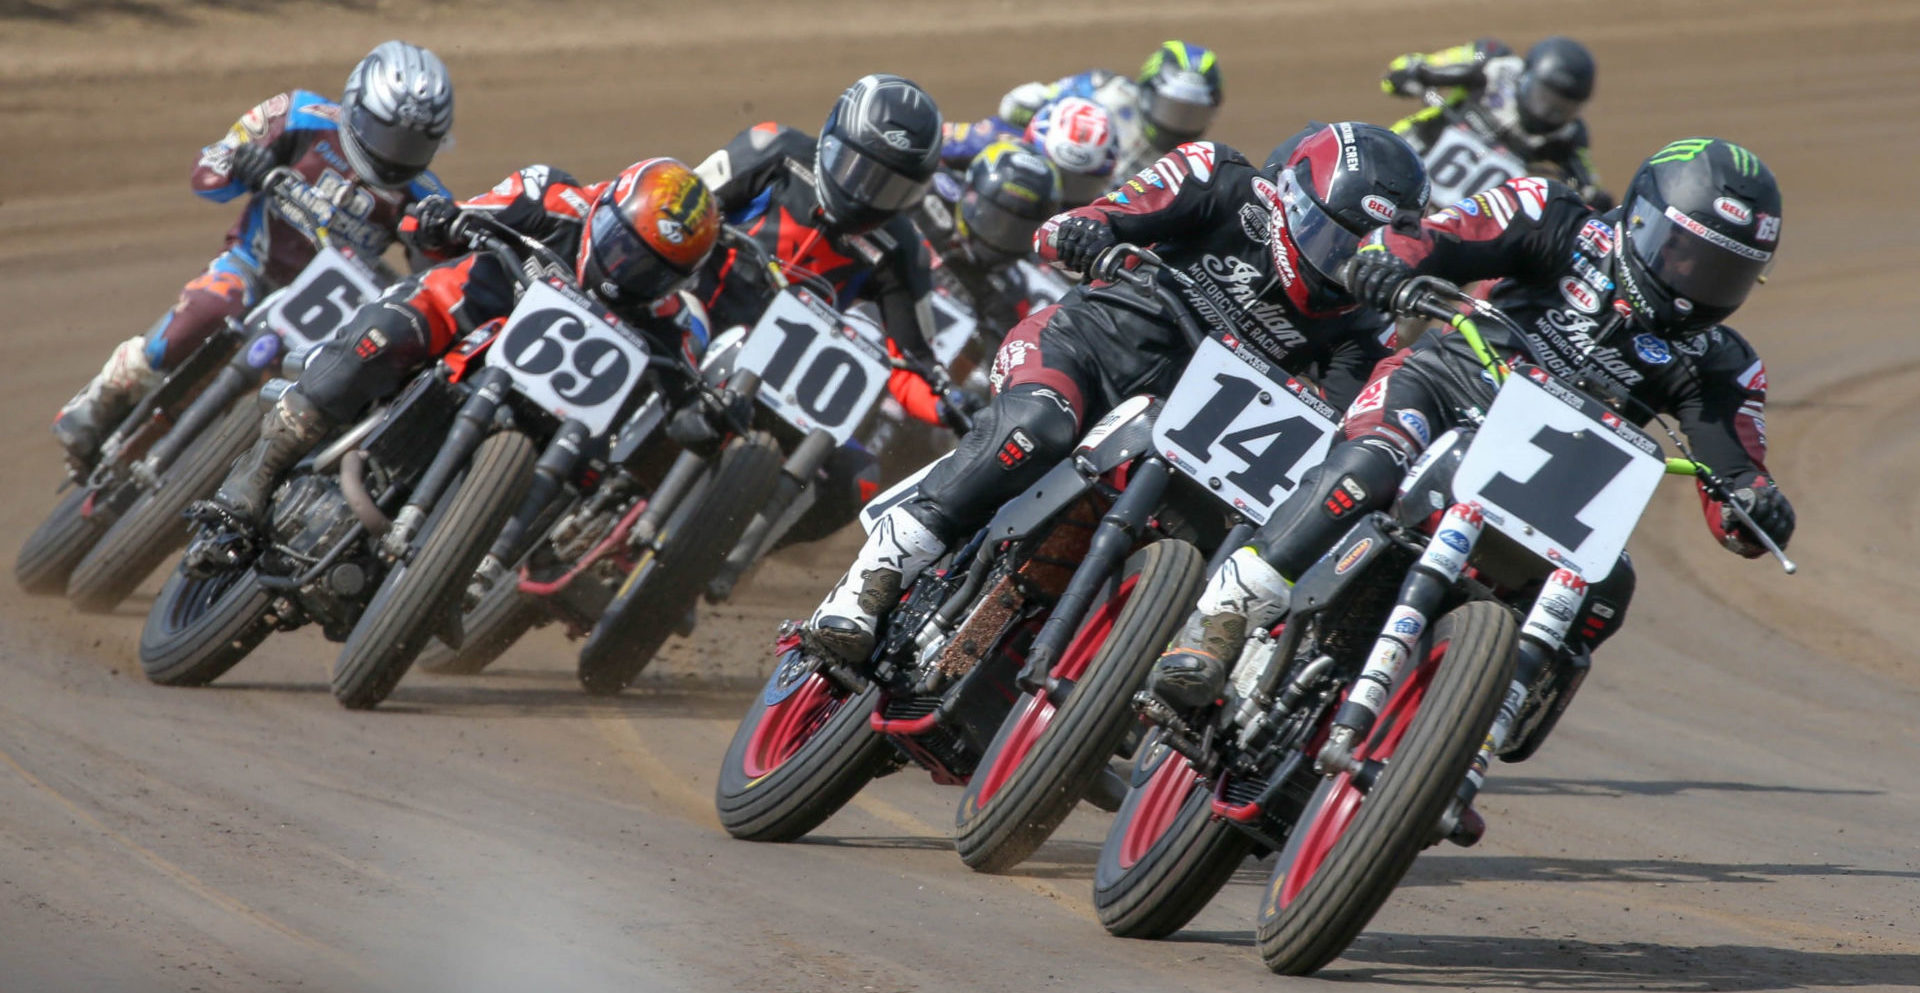 AFT Twins riders in action during the 2019 season. Photo by Scott Hunter, courtesy of AFT.